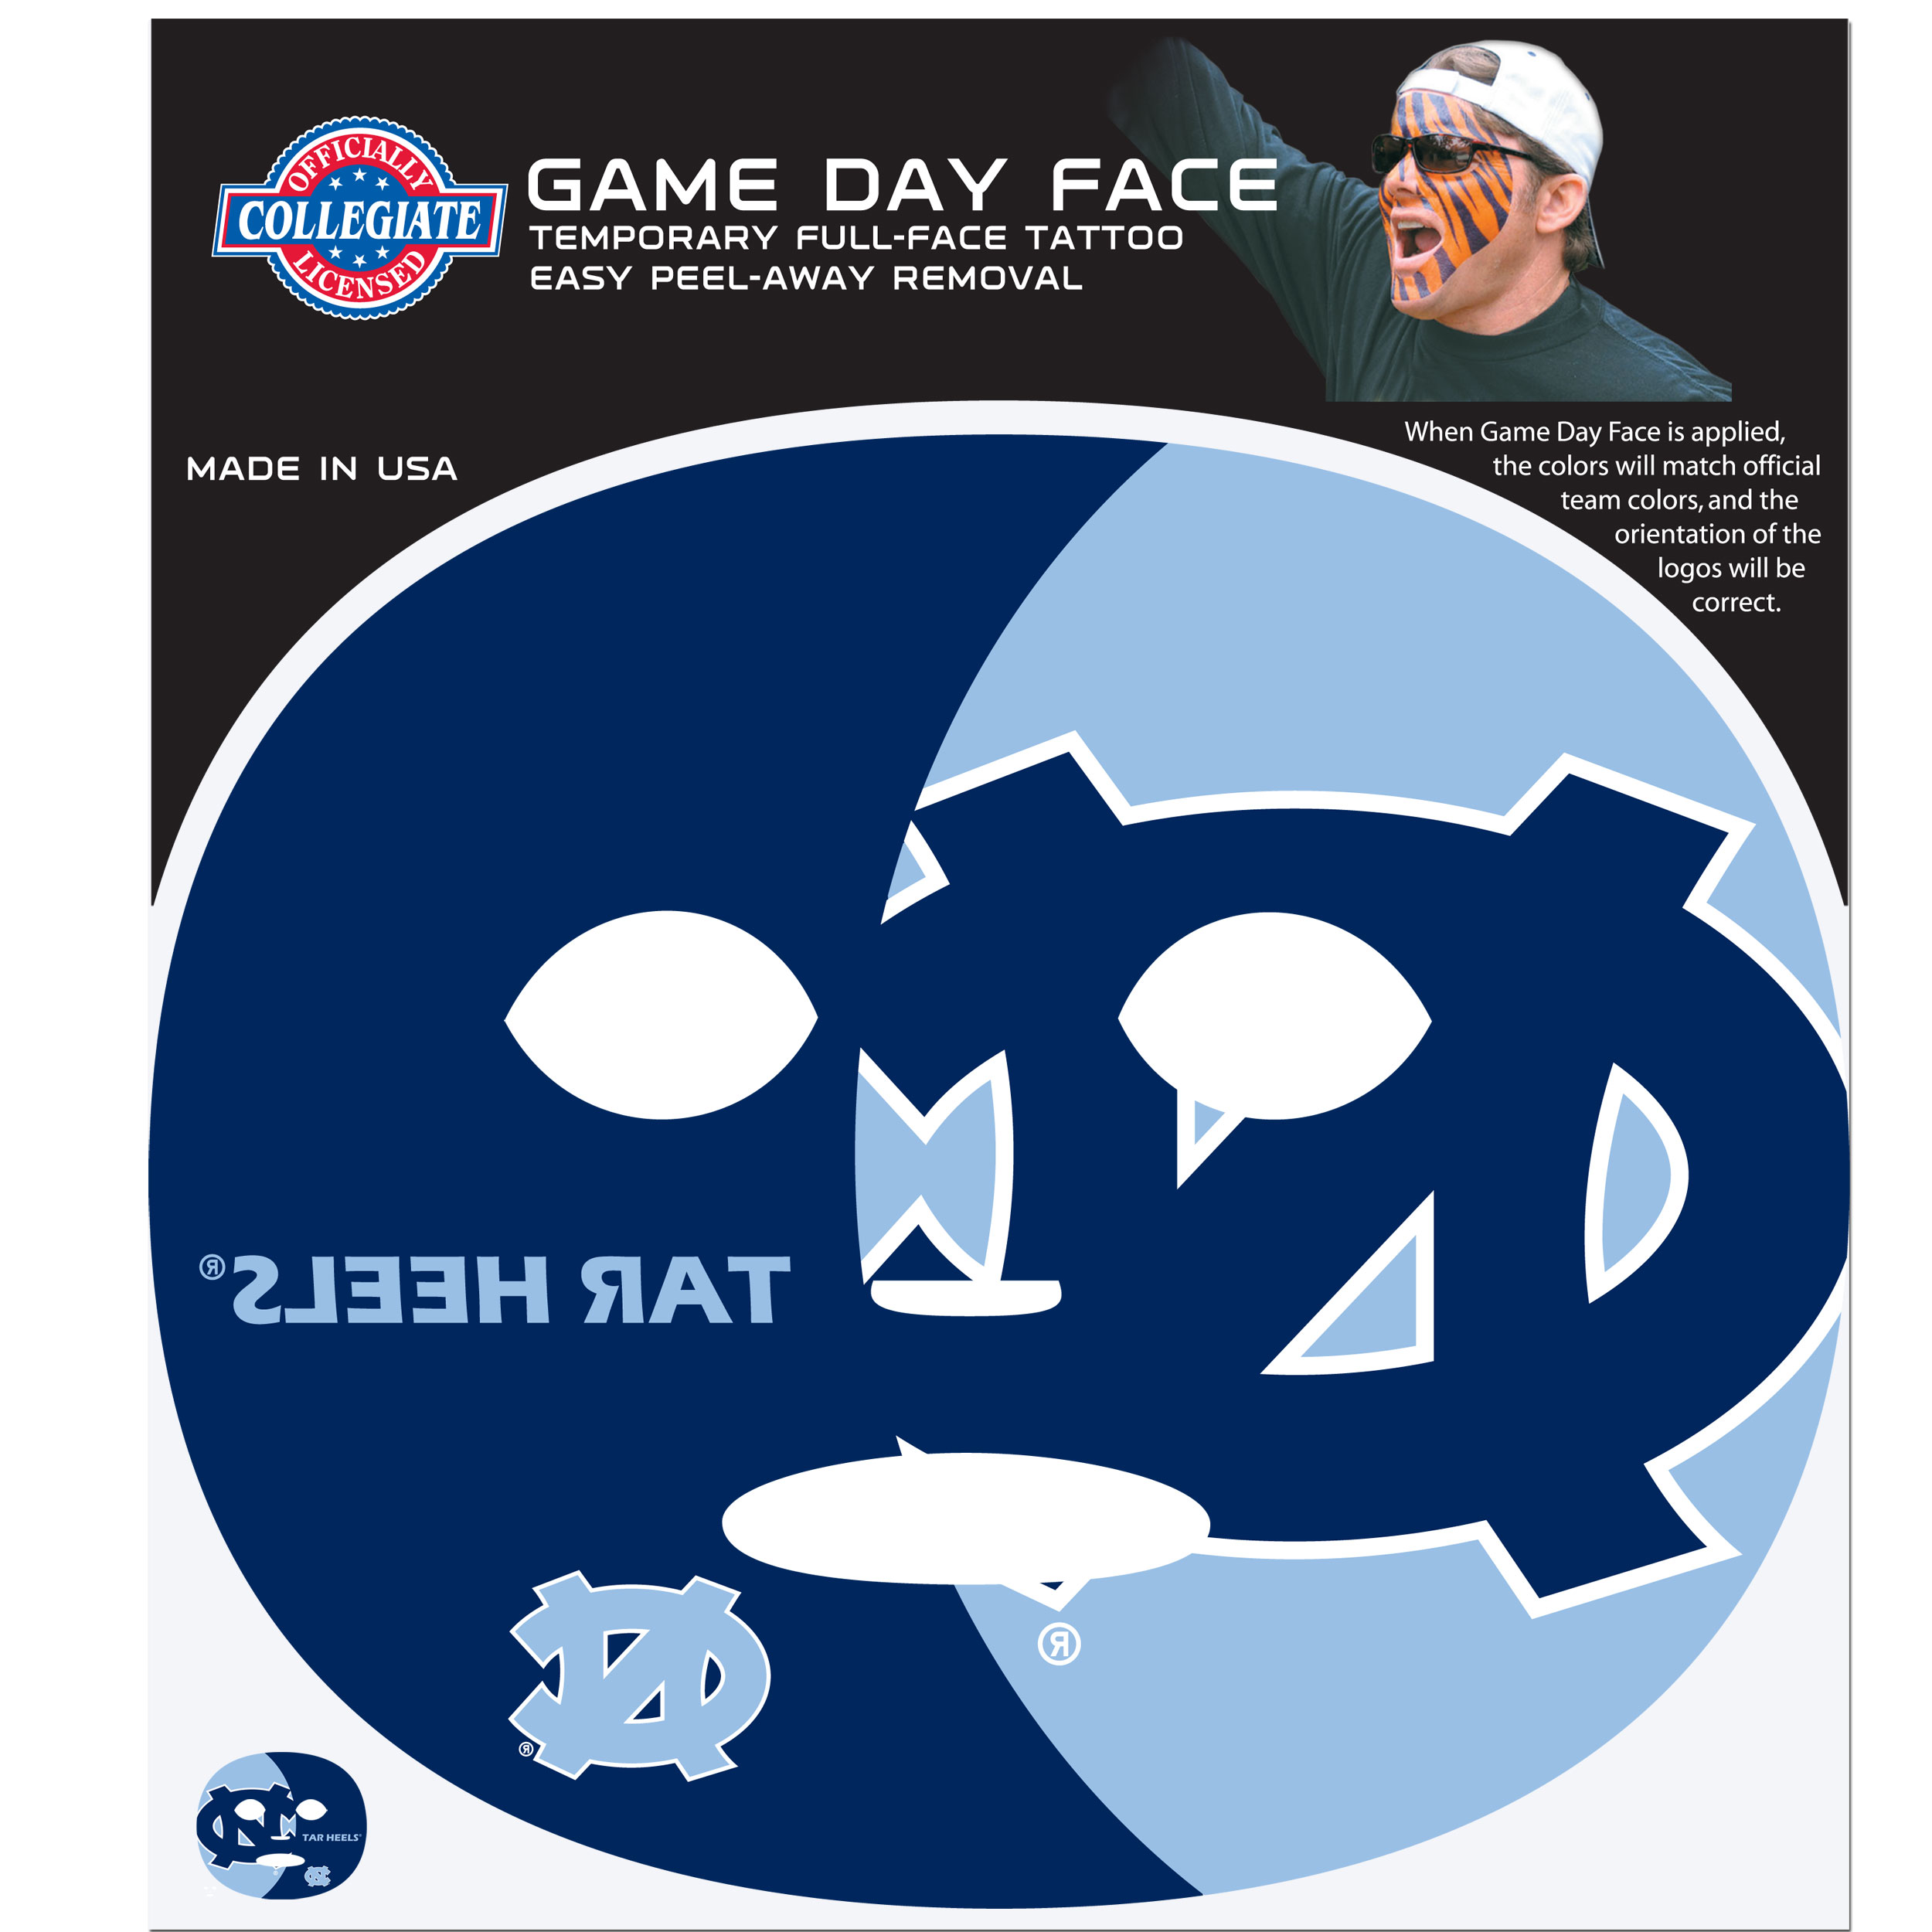 N. Carolina Tar Heels Game Face Temporary Tattoo - No better way to show your N. Carolina Tar Heels pride than by painting your face. Siskiyou's Game Day Face Temporary Tattoo isn't your typical face paint. It is a water based application that doesn't smudge, smear or sweat off  while you're wearing it and easily peels off after you're done celebrating your team's big Win! The temporary tattoo is large enough to trim down to fit your face.  Our Game Day Face Temporary Tattoo's are fun for fans of all ages. You may have seen our product before,  these are the same Temporary Face Tattoos as pitched on ABC's Shark Tank.